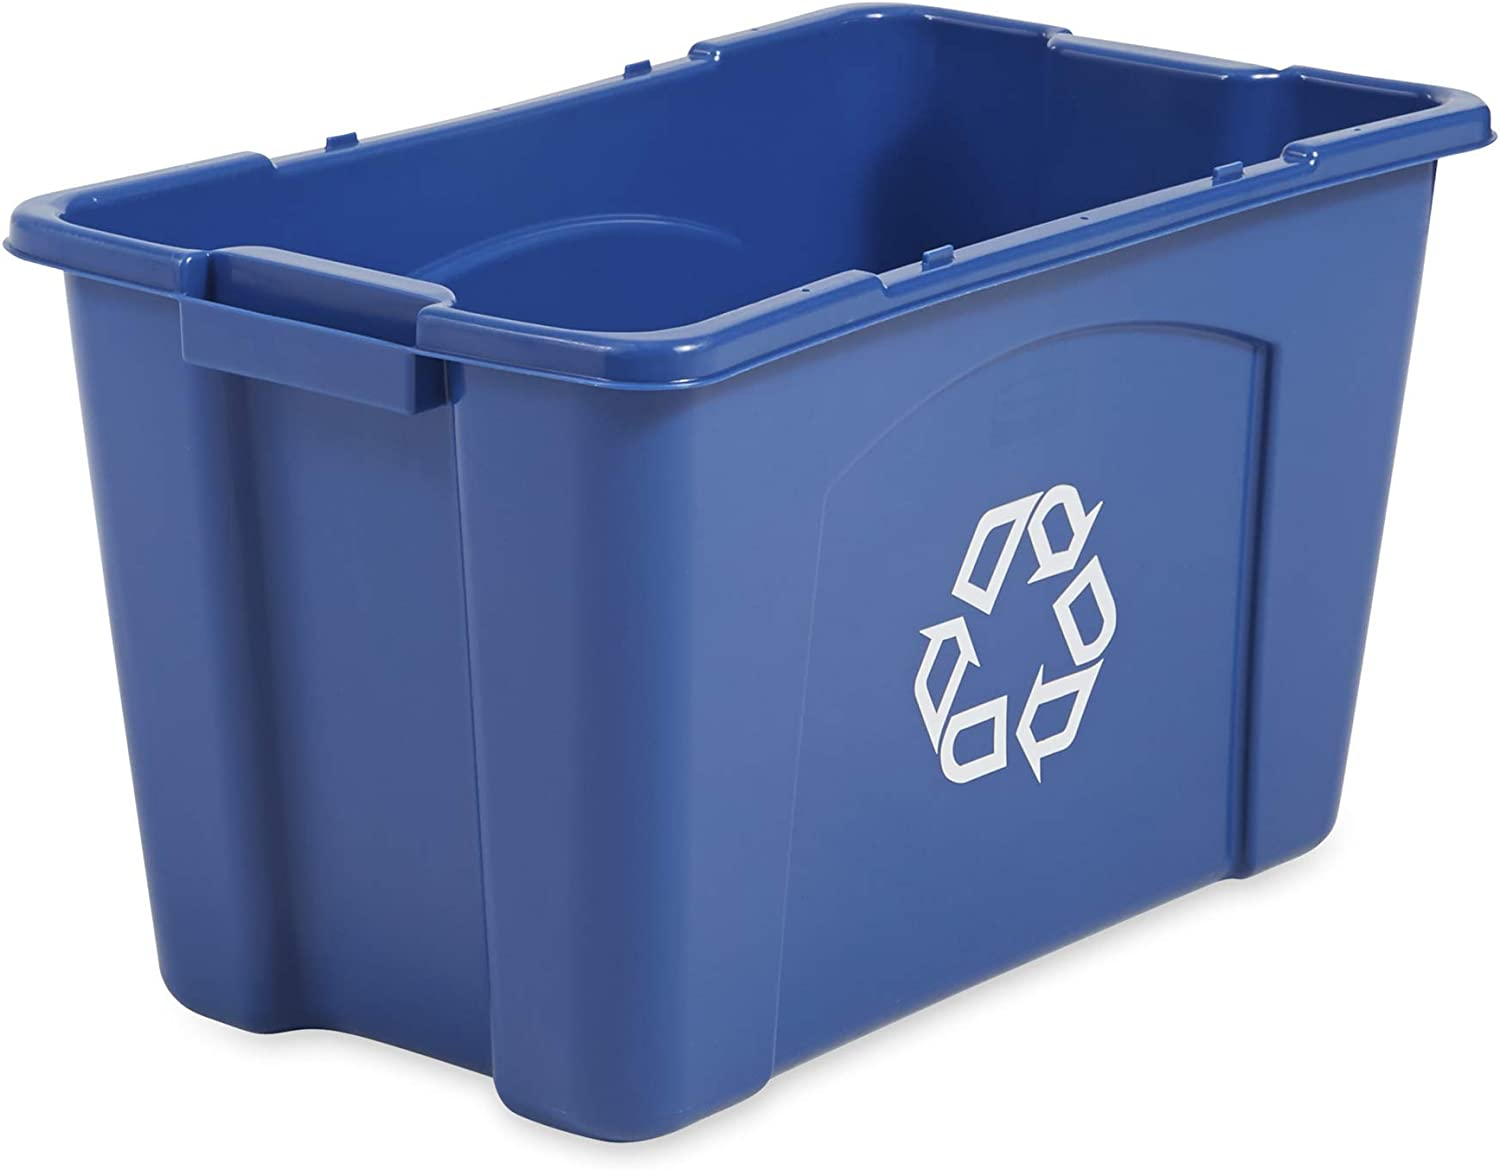 Rubbermaid Commercial Products Recycling Box/Bin, 18 Gallon, Blue